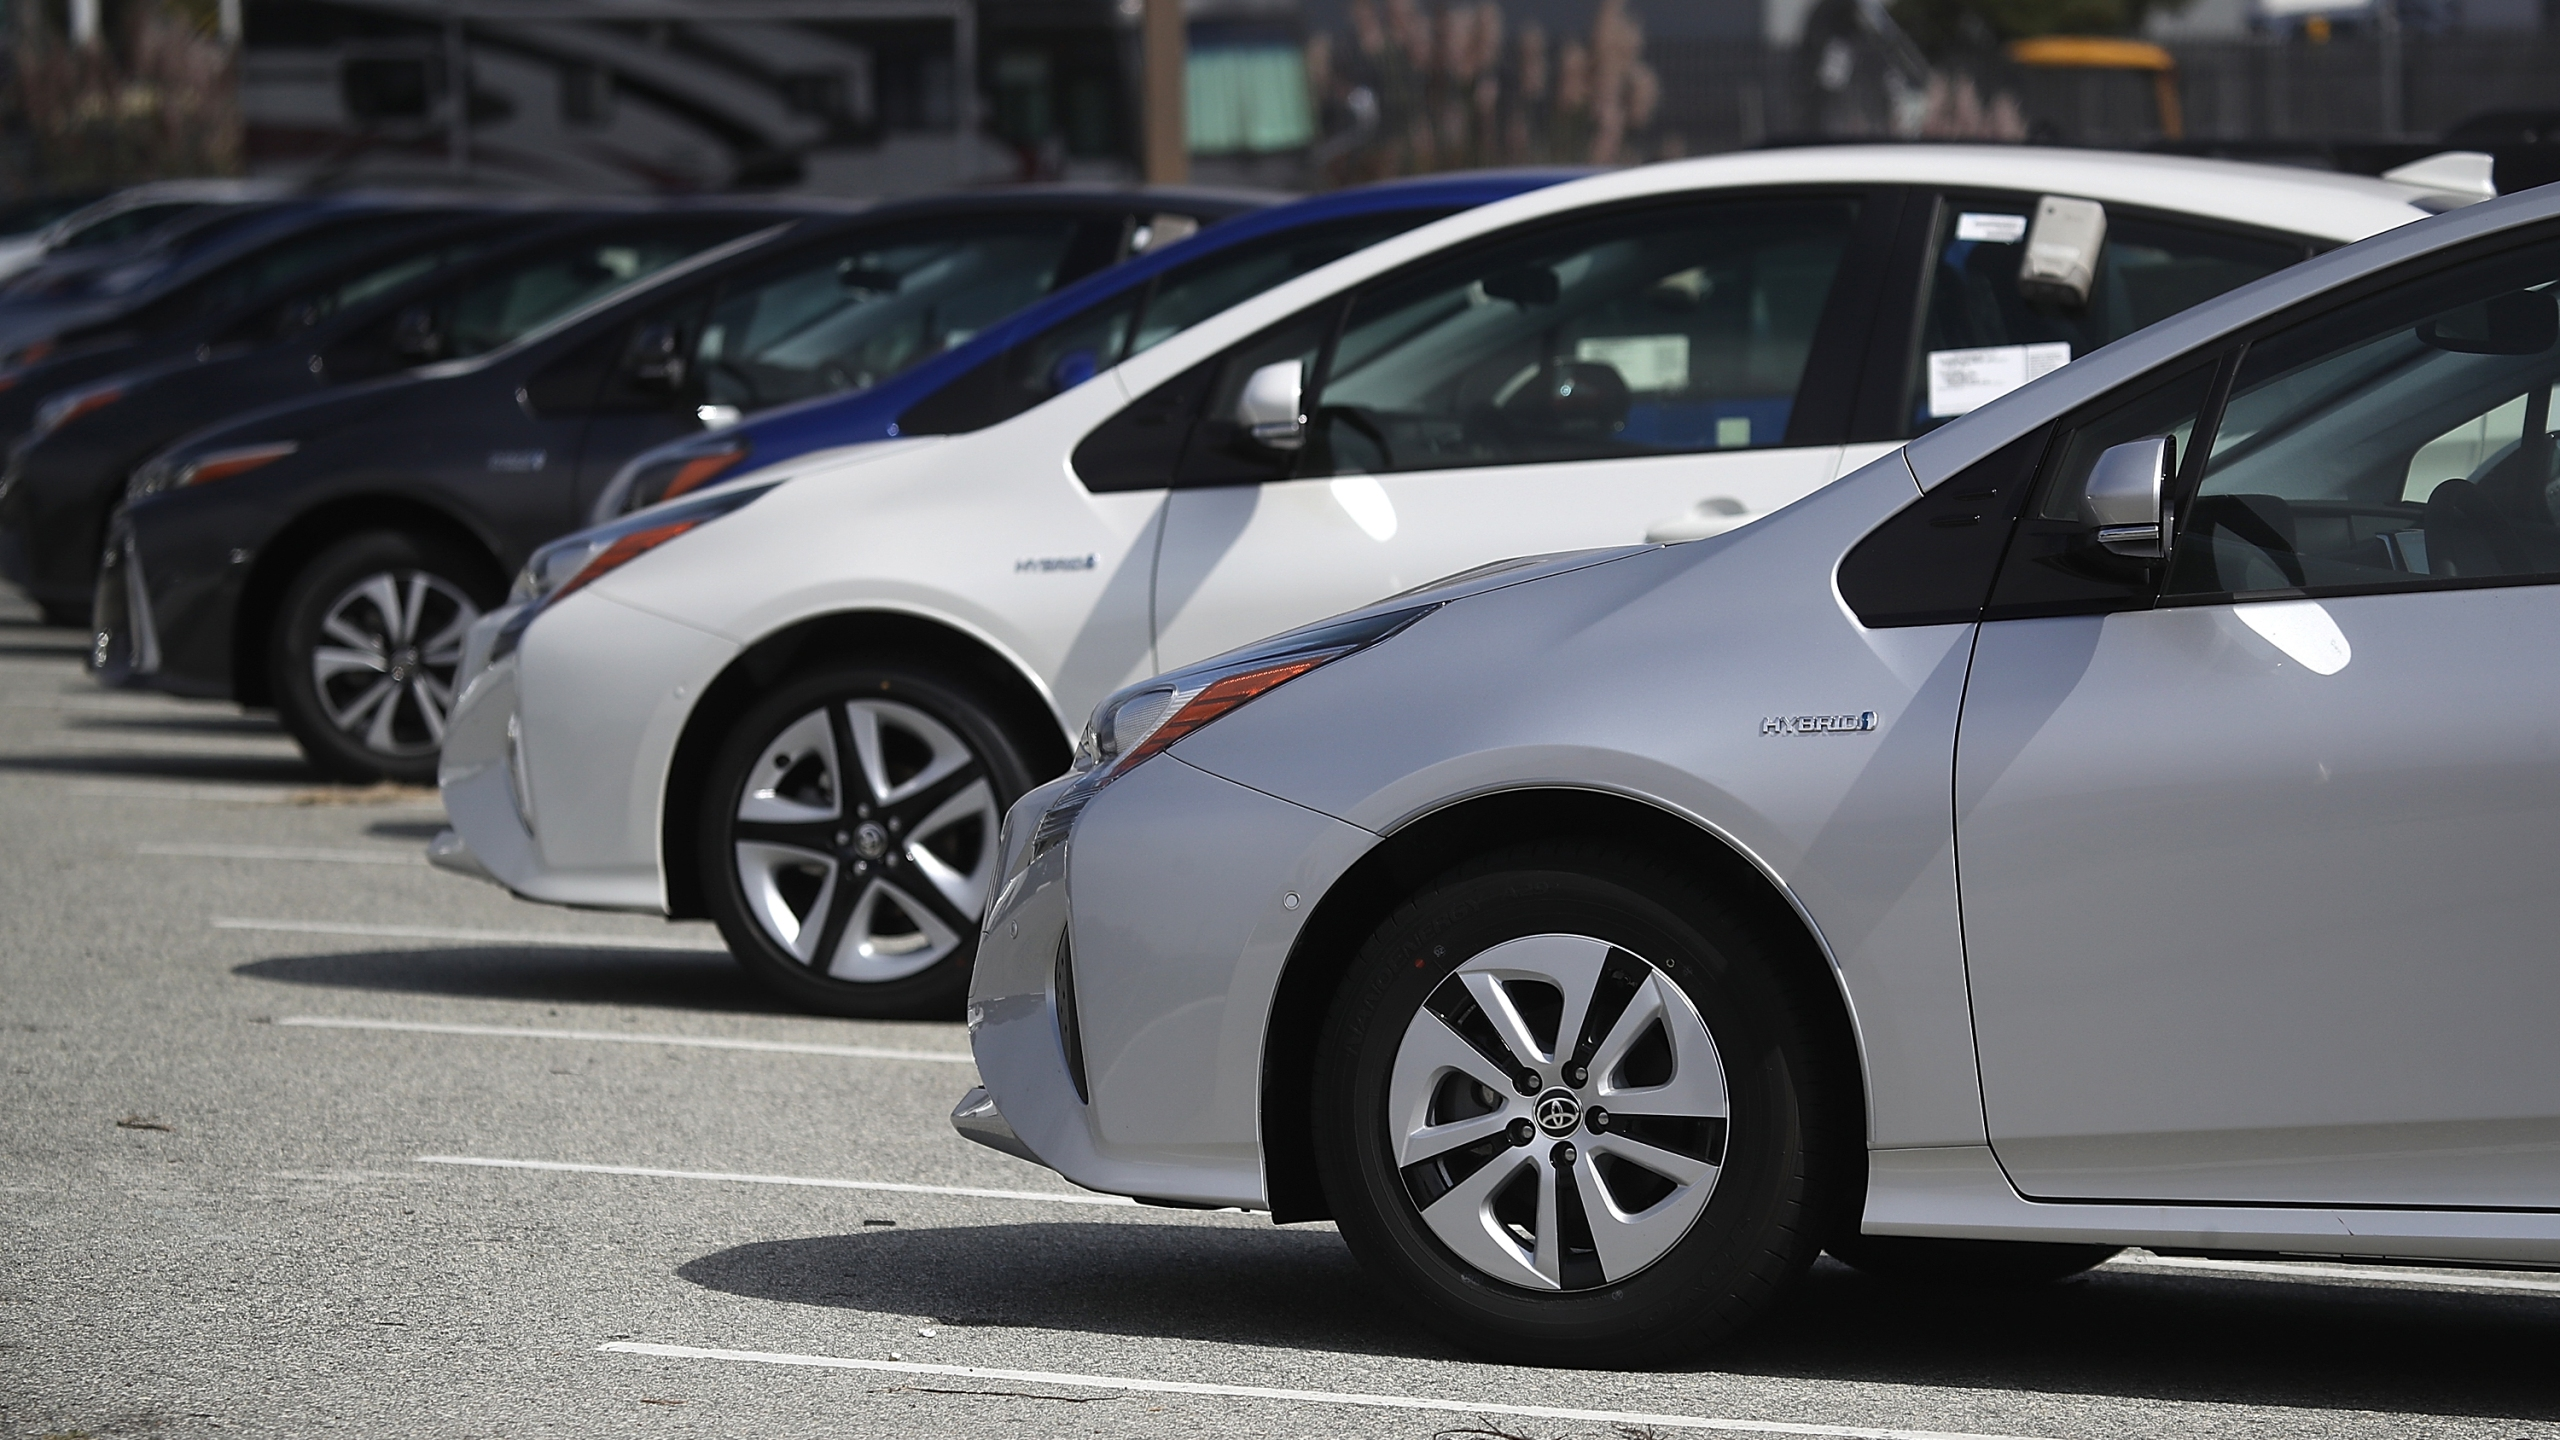 Brand new Toyota Prius cars are displayed on a sales lot at City Toyota on Sept. 5, 2018, in Daly City, Calif. (Credit: Justin Sullivan/Getty Images)